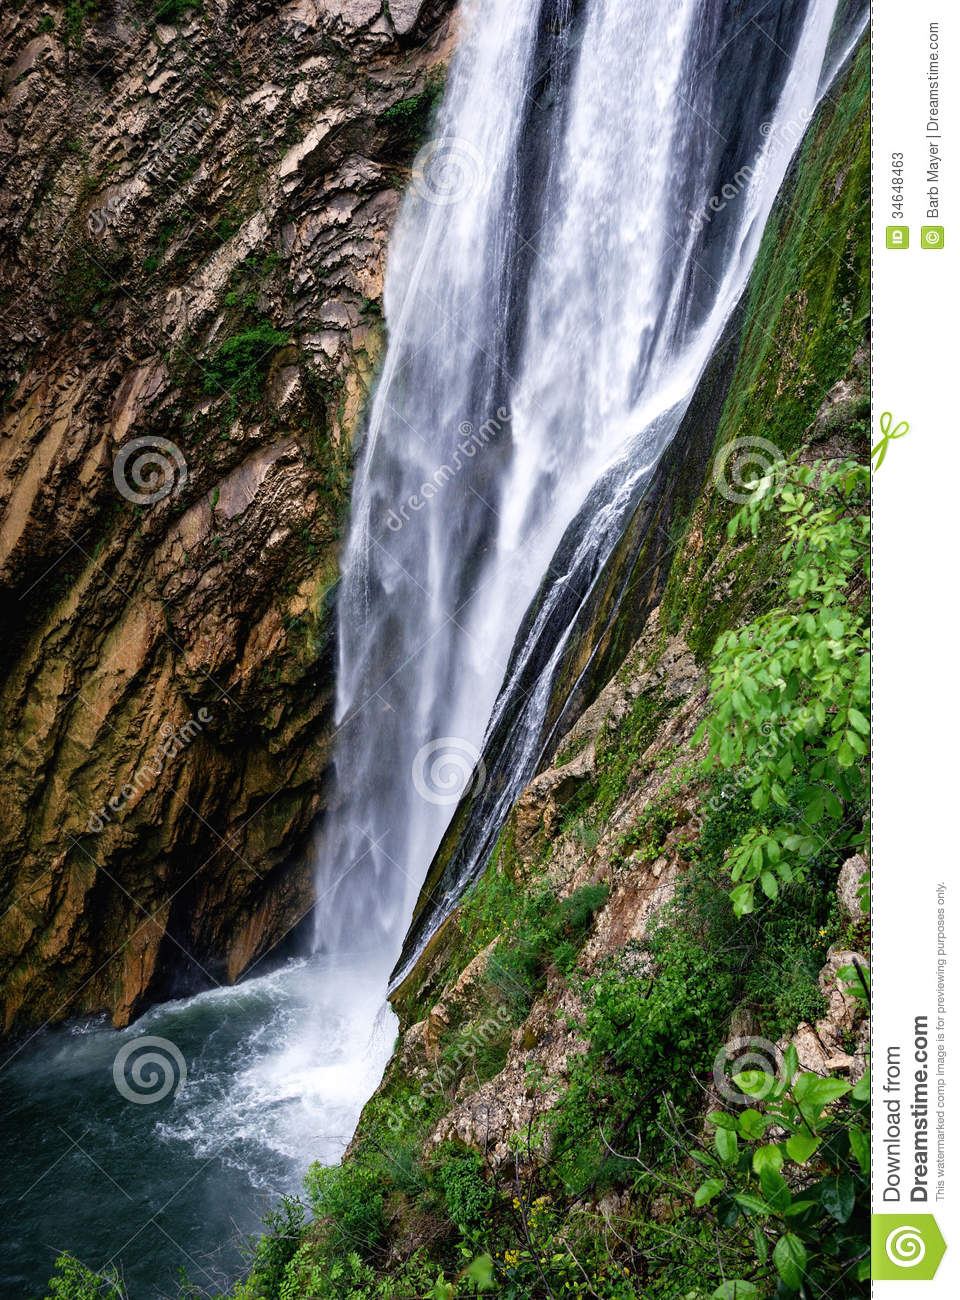 from water shower of flows bottom